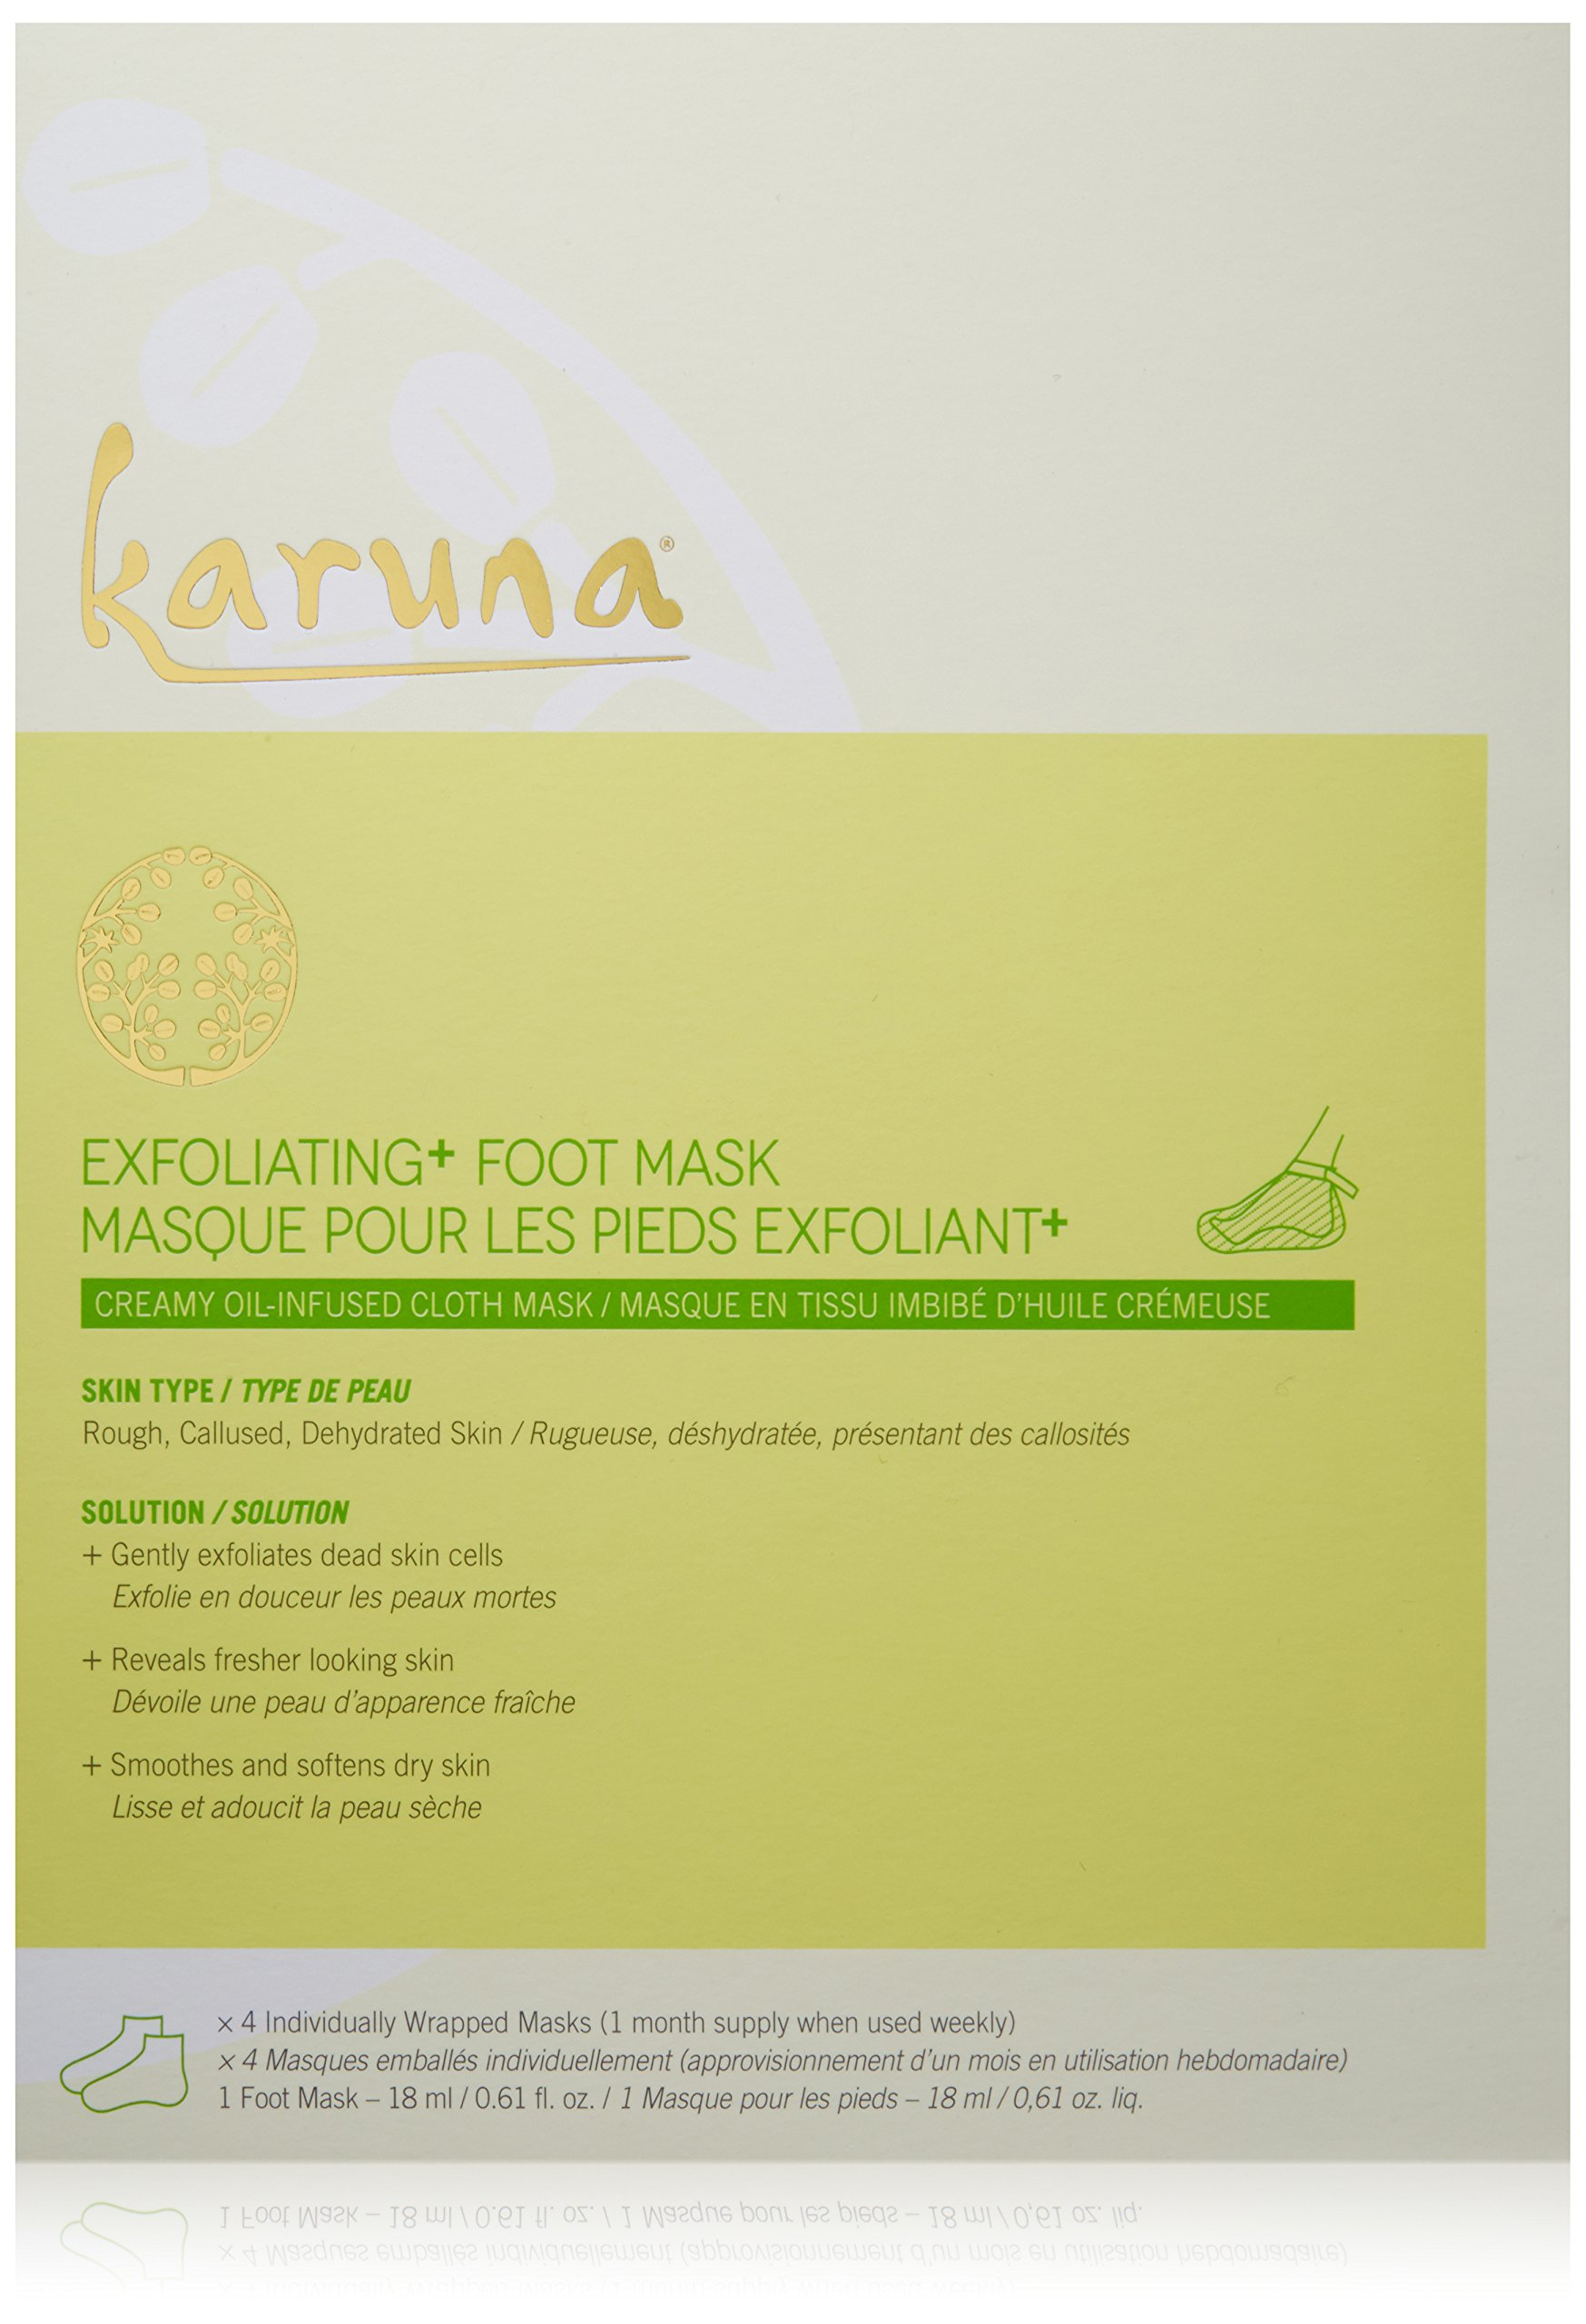 Karuna Exfoliating + Foot Mask, 2.44 fl. oz.